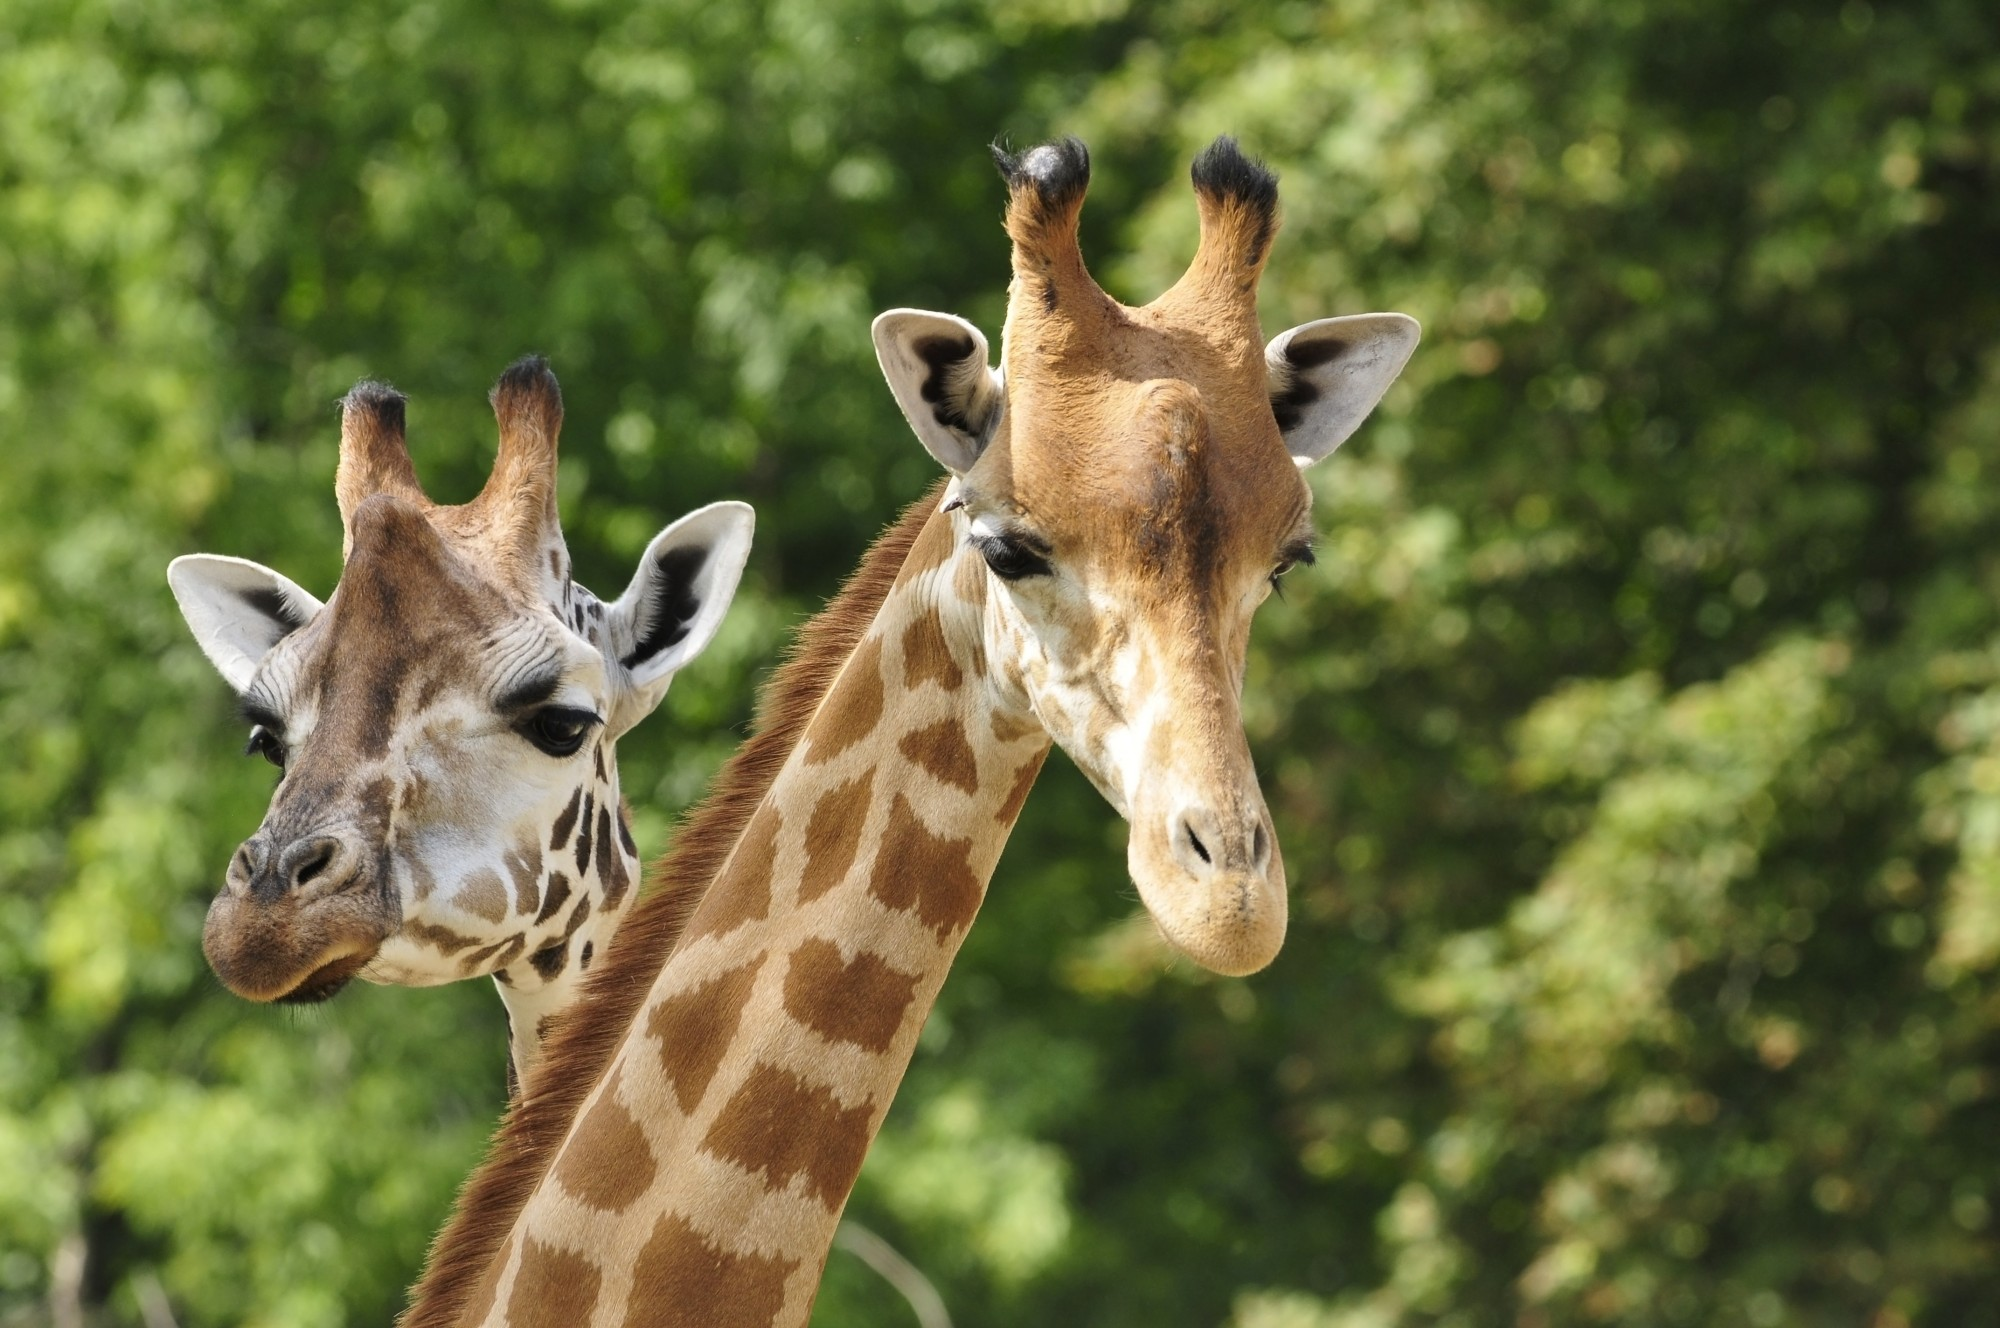 Two giraffes with trees in the background